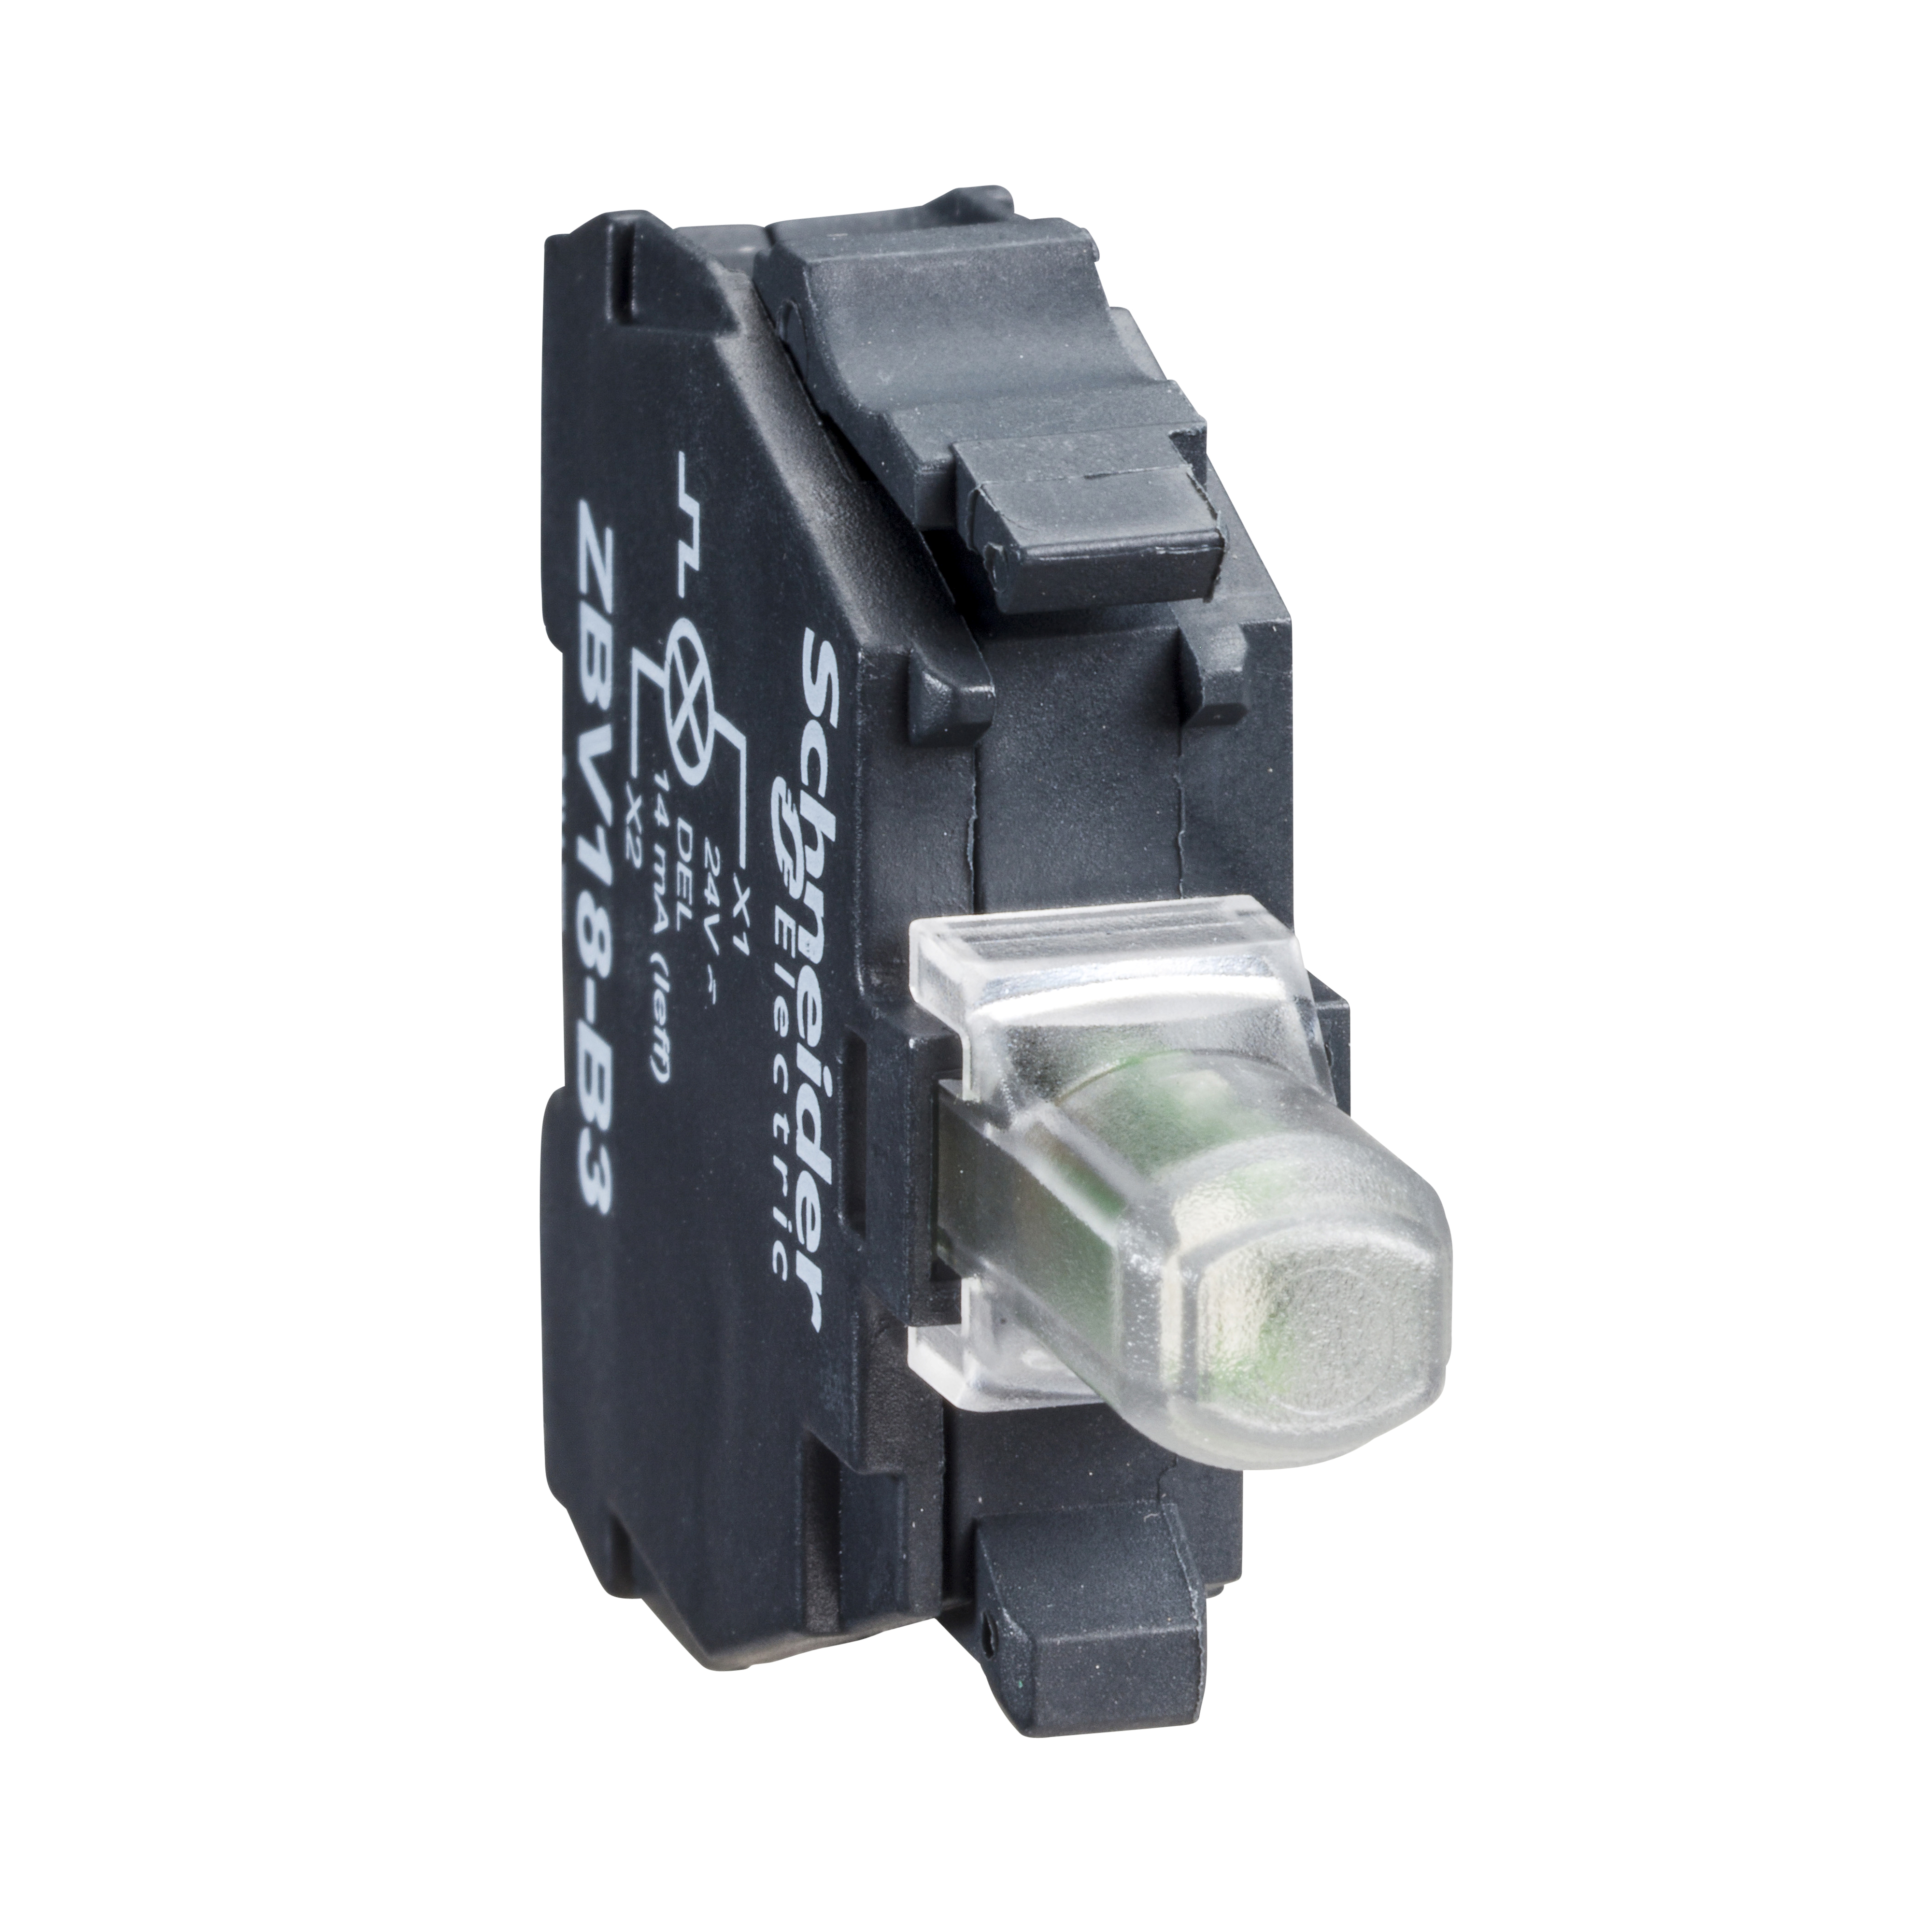 SQUARE D Green light block for head Ø22 integral LED 24...120V screw clamp terminals